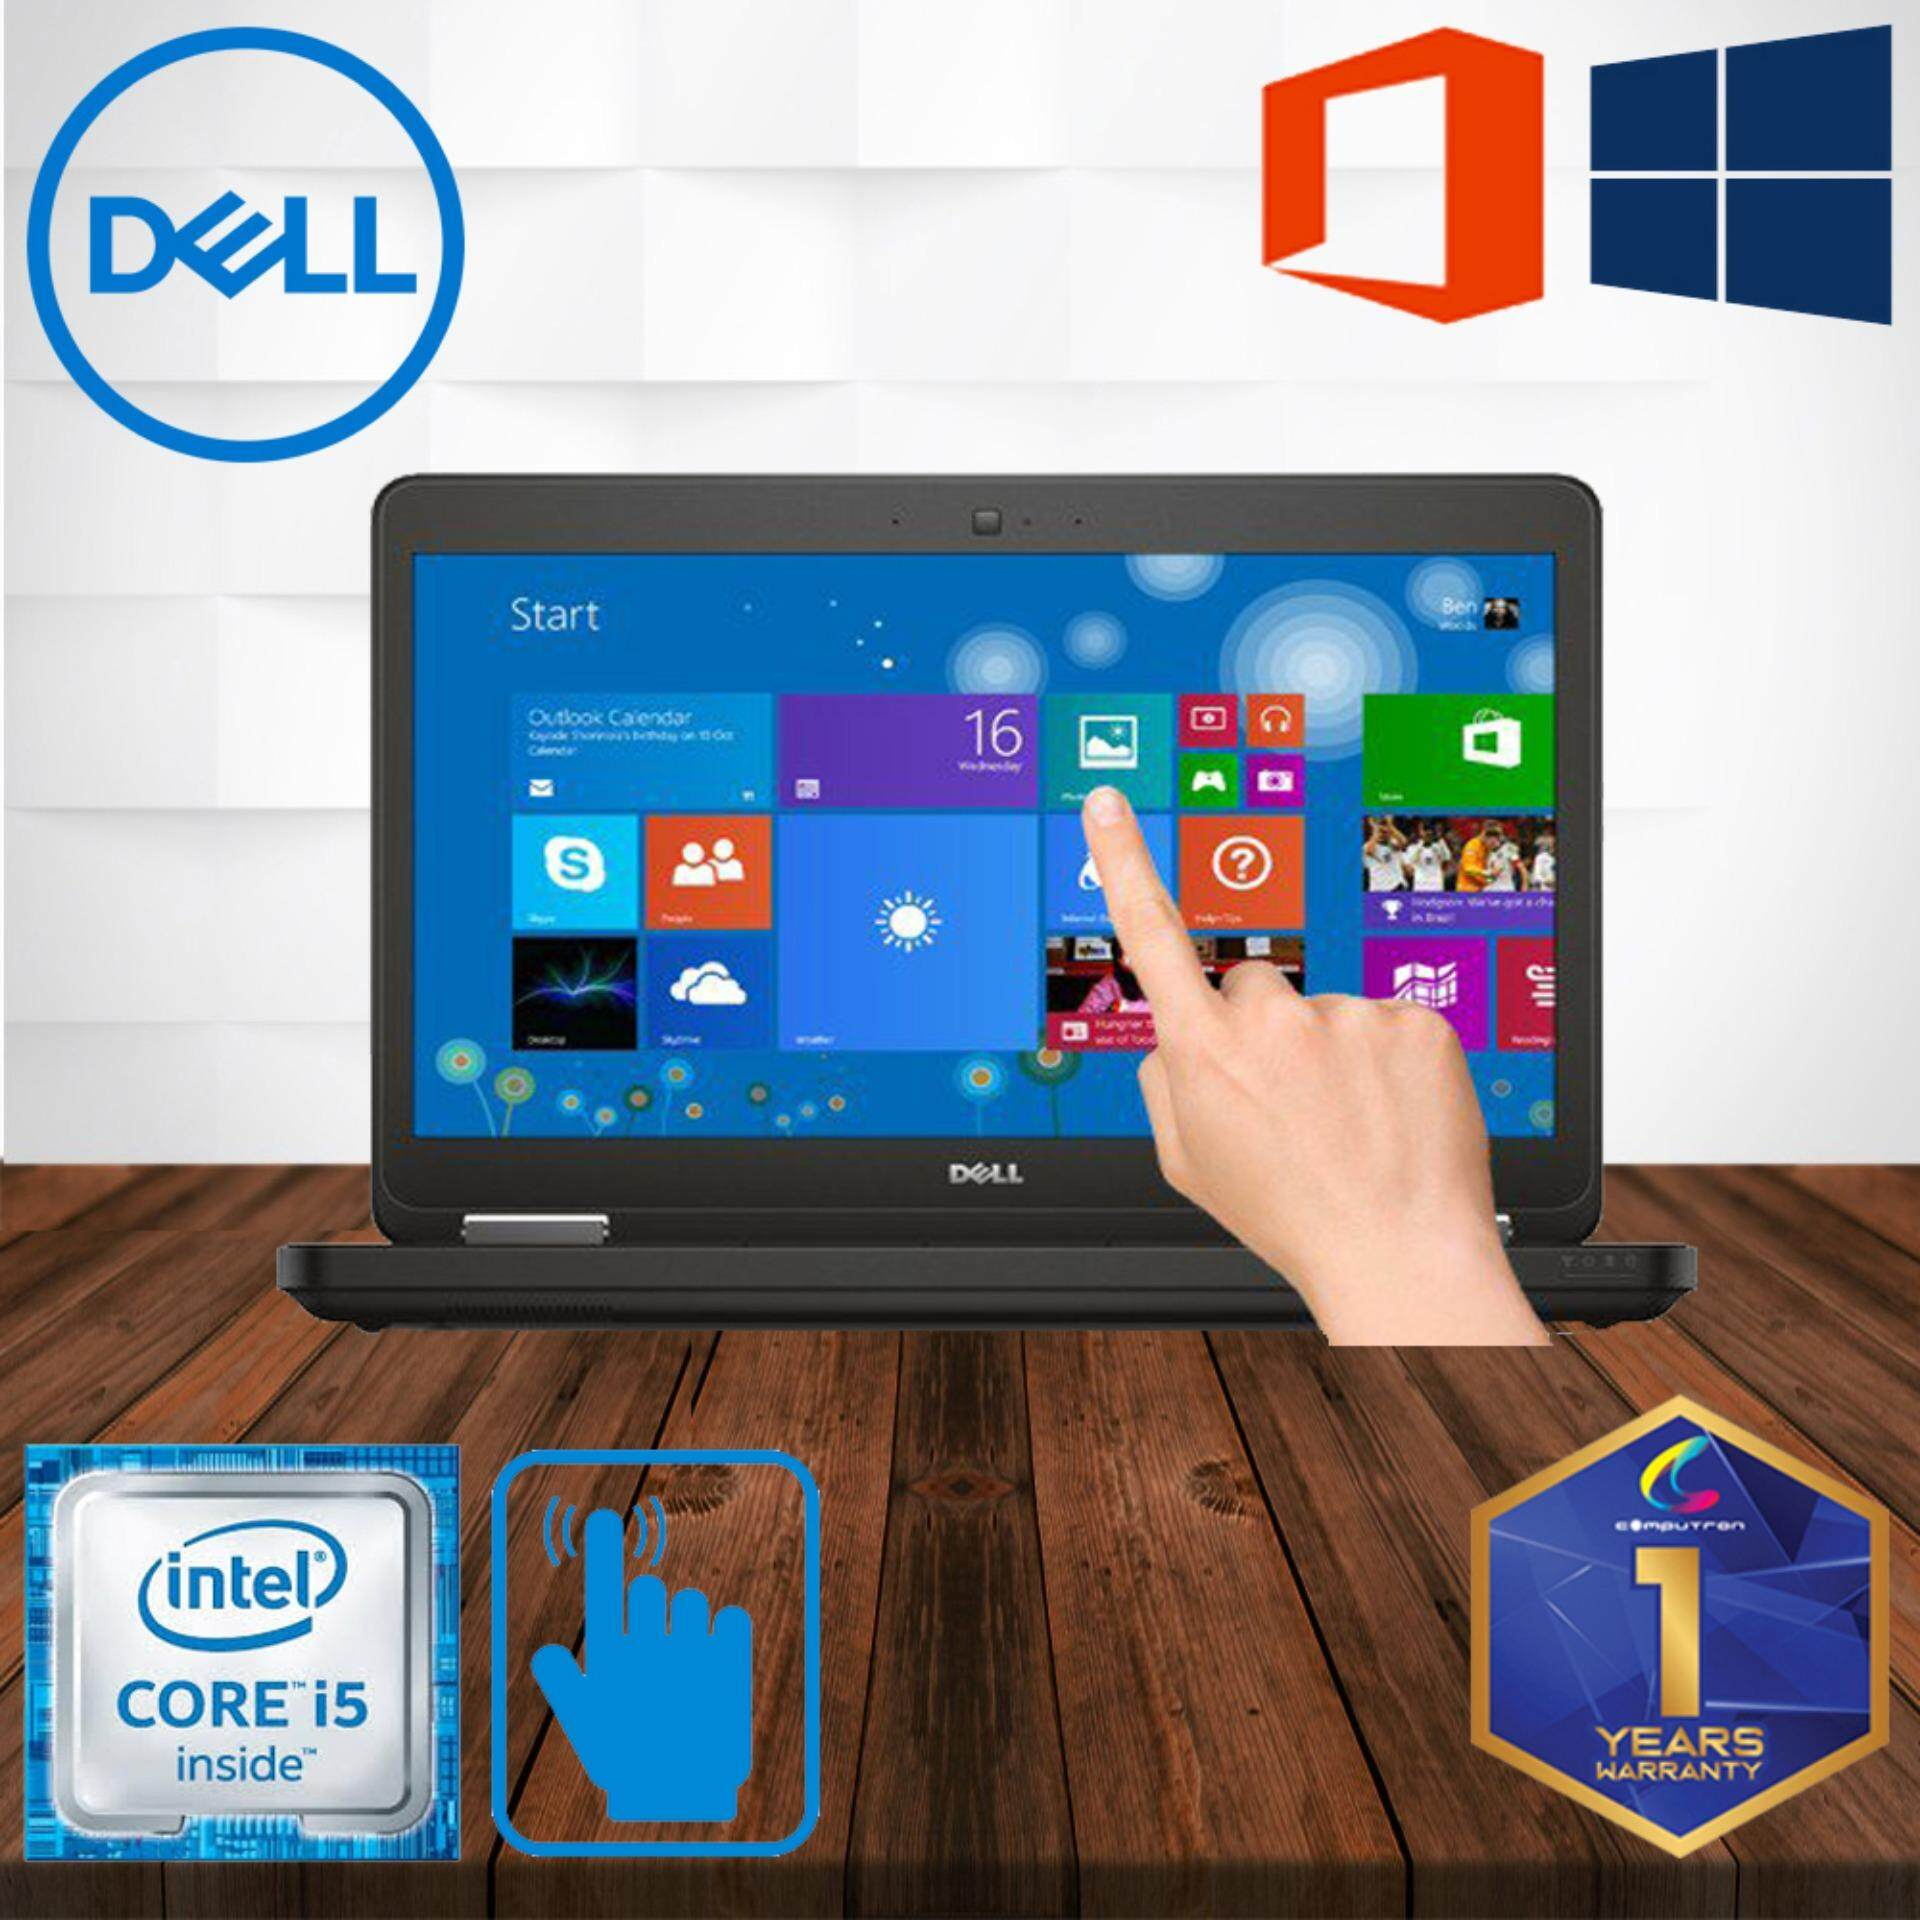 DELL LATITUDE E5440 TOUCHSCREEN [ CORE I5 HASWELL / 4GB DDR3 RAM/ 500GB HDD / WINDOWS 10 PRO ] 1 YEAR WARRANTY [ LAPTOP ] Malaysia